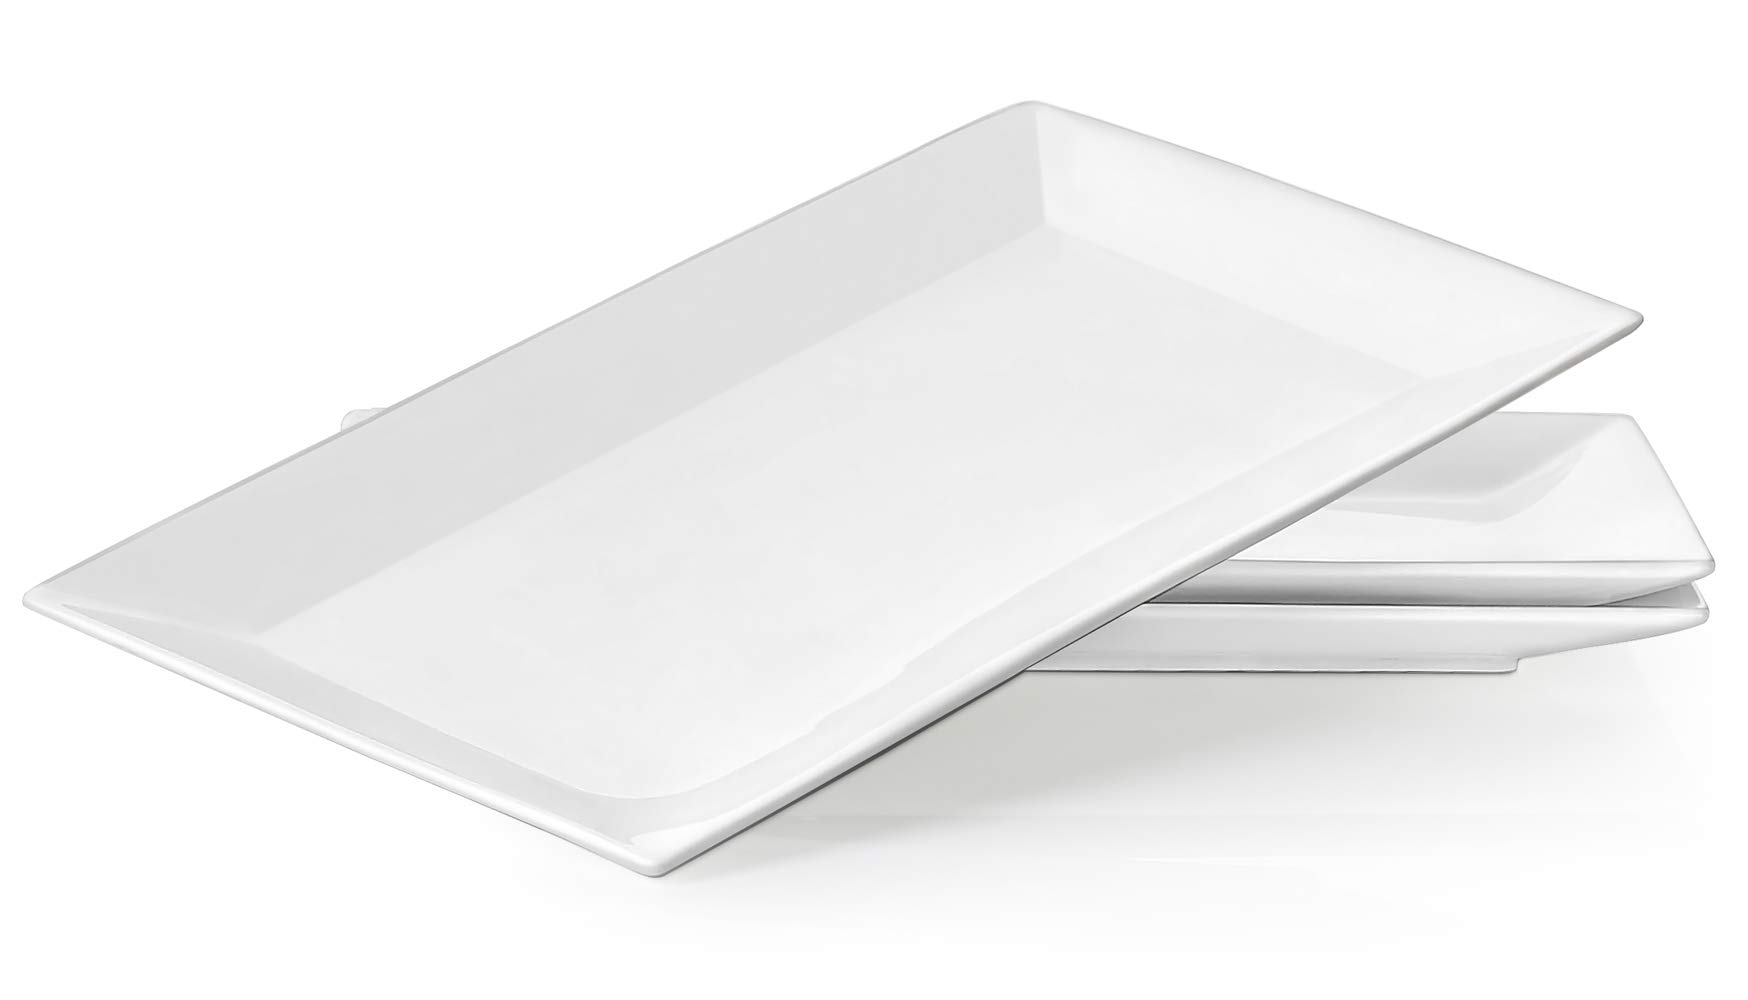 DOWAN 14 Inches Porcelain Serving Platters, Dinner Plate Set, 3 Packs, White and Rectangular by DOWAN